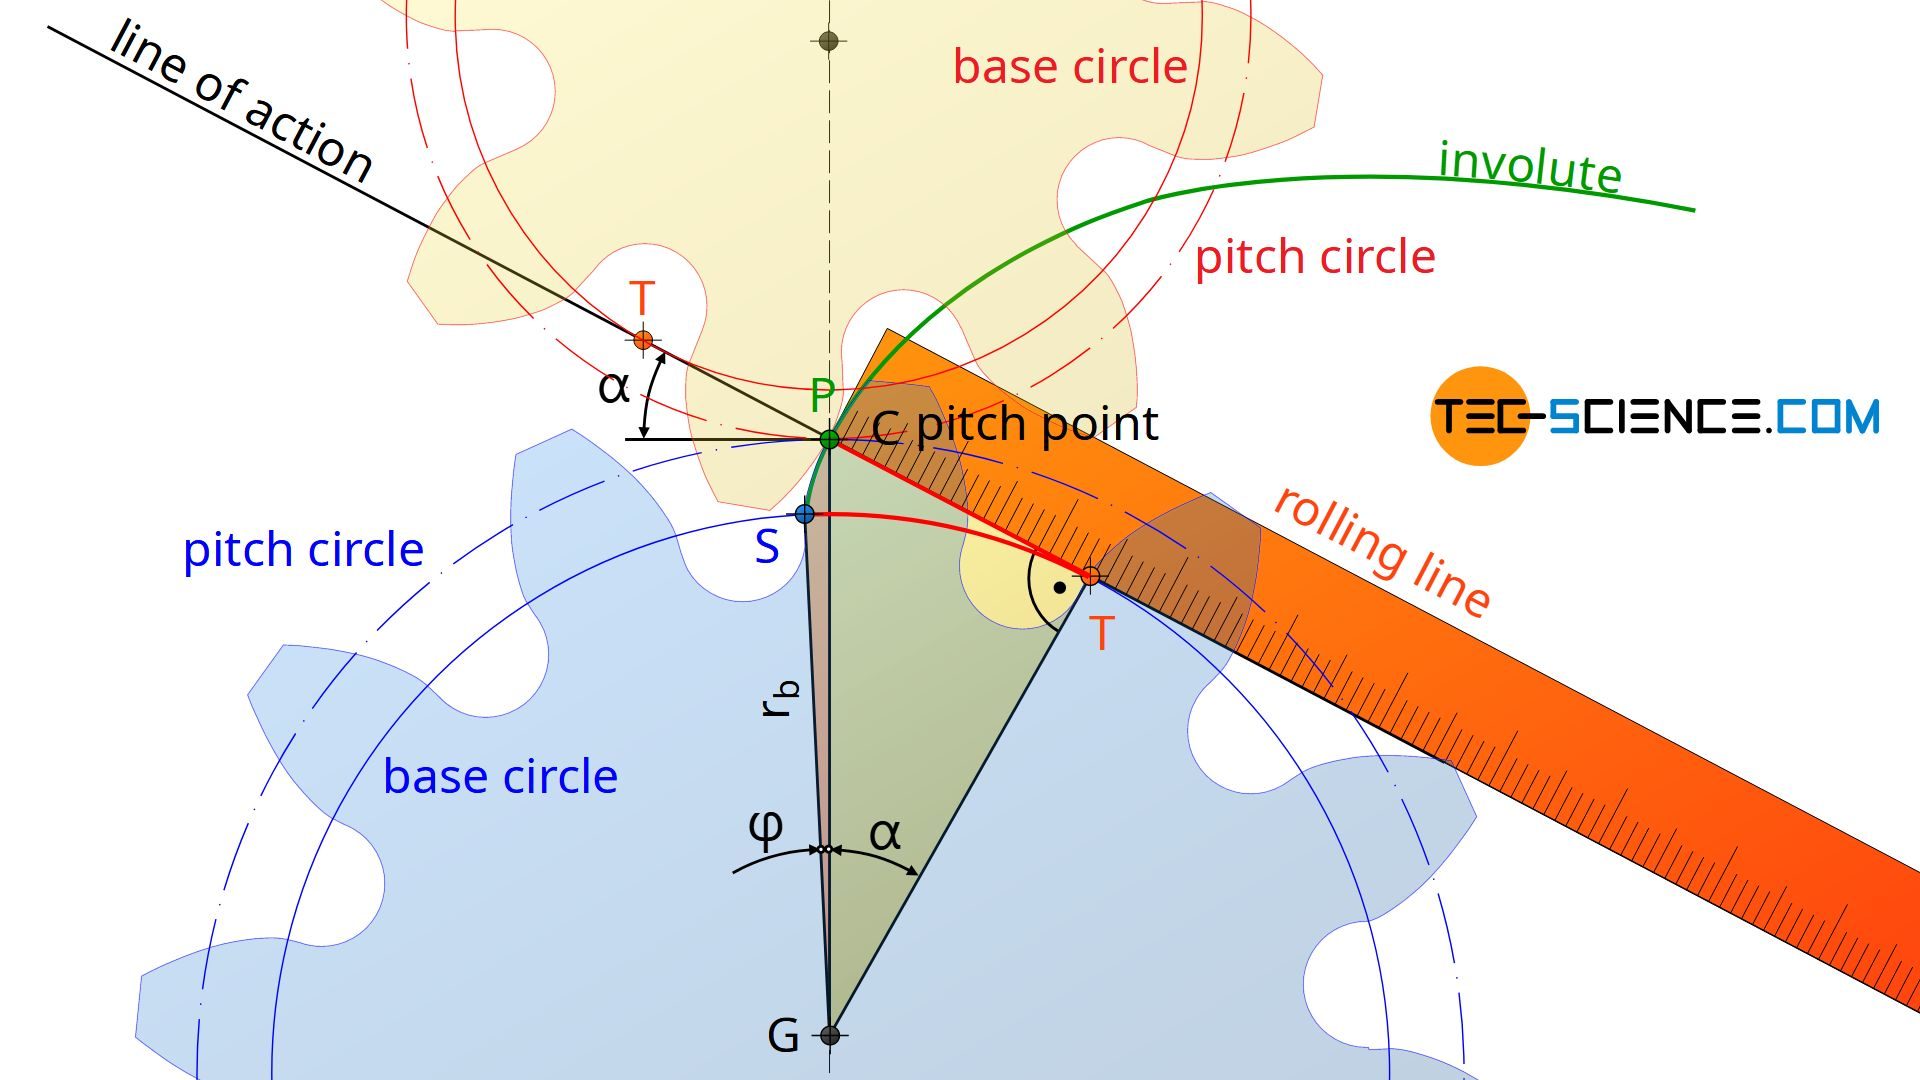 Pressure angle and involute function